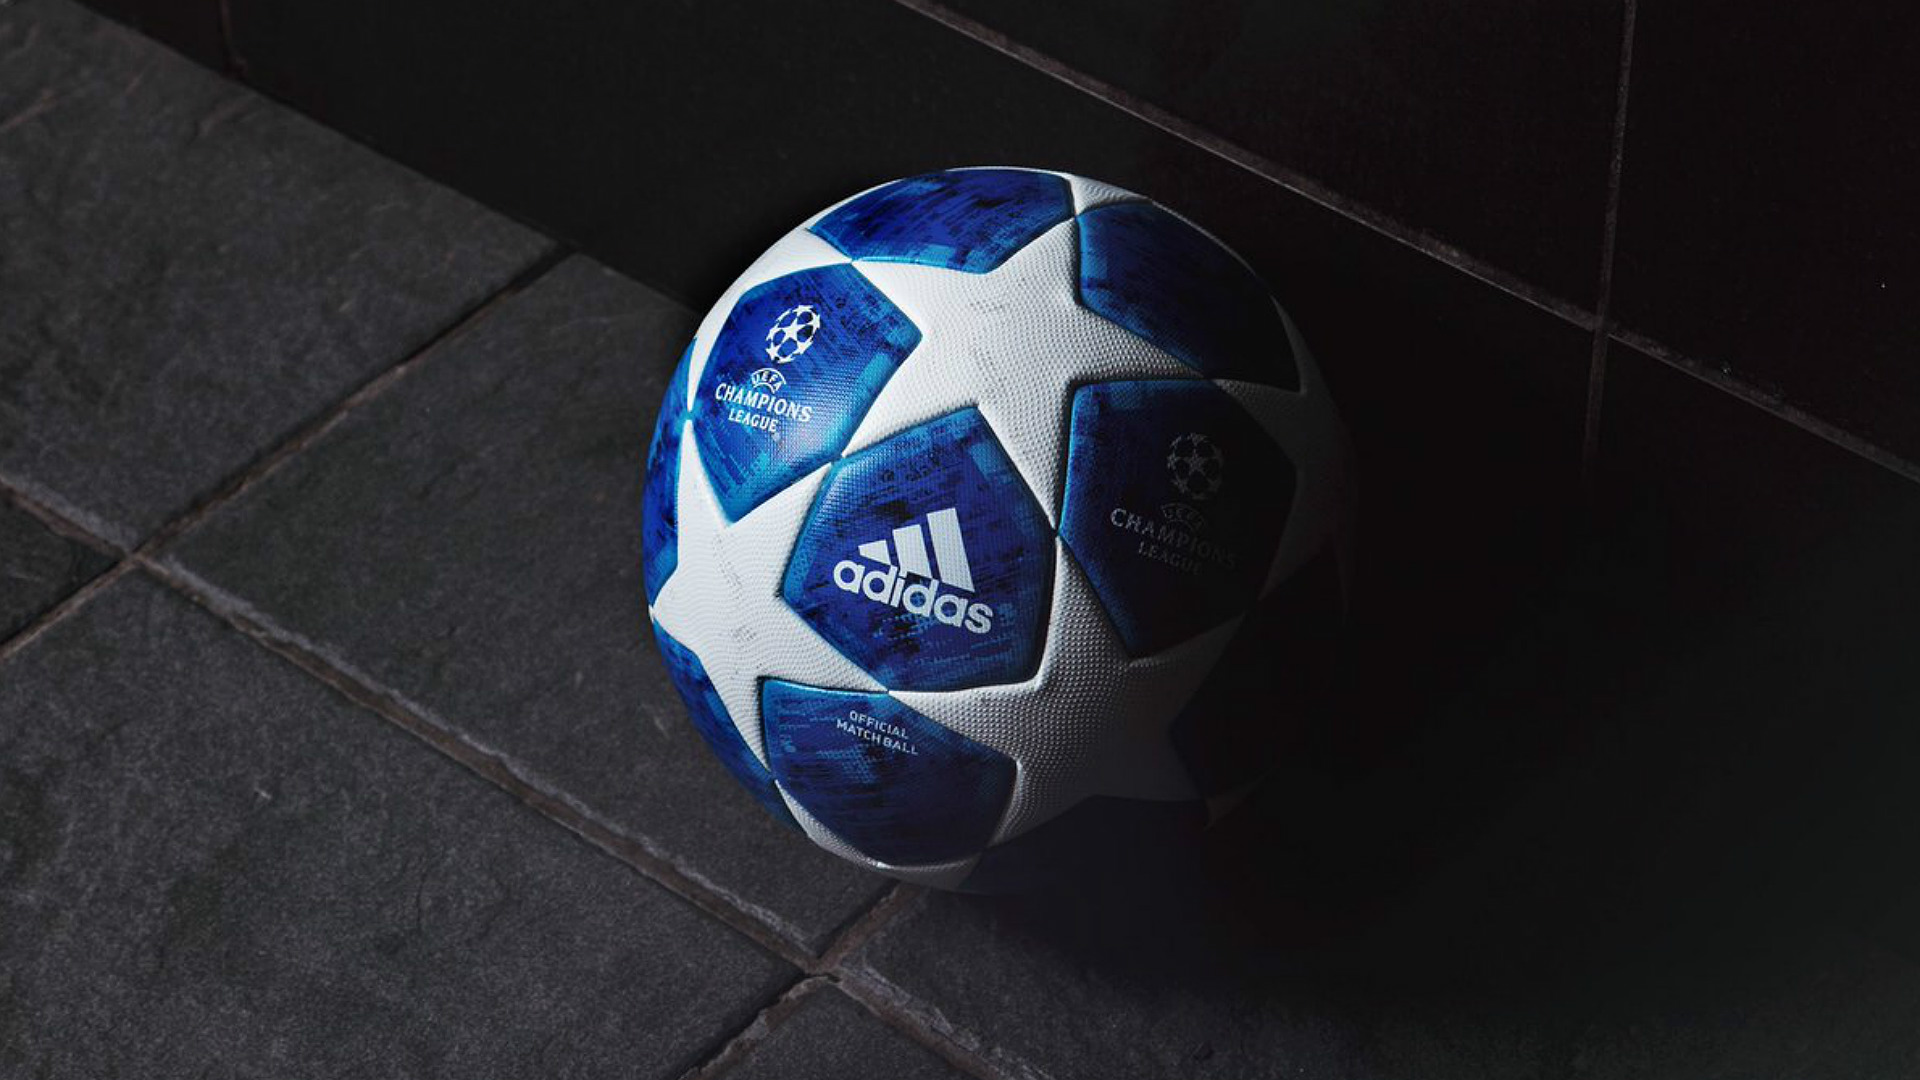 UCL ball 18-19